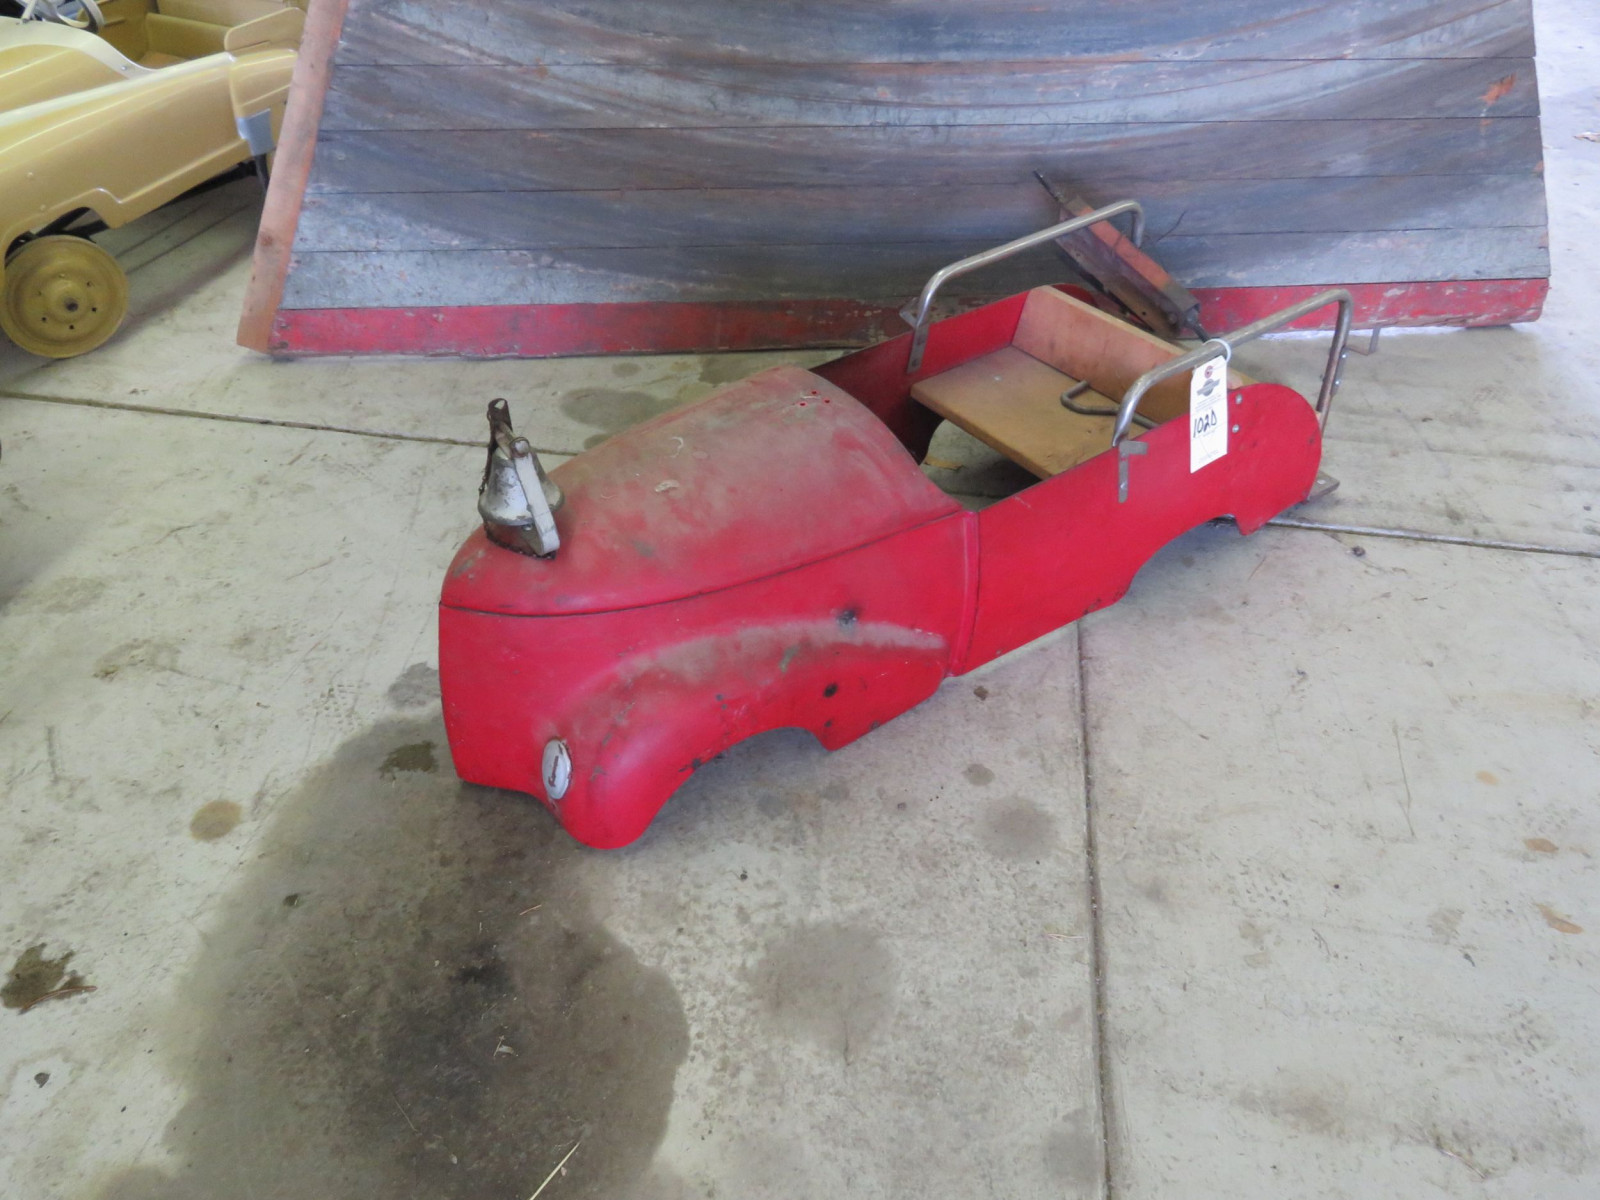 Vintage Pedal Car Body for Restore - Image 1